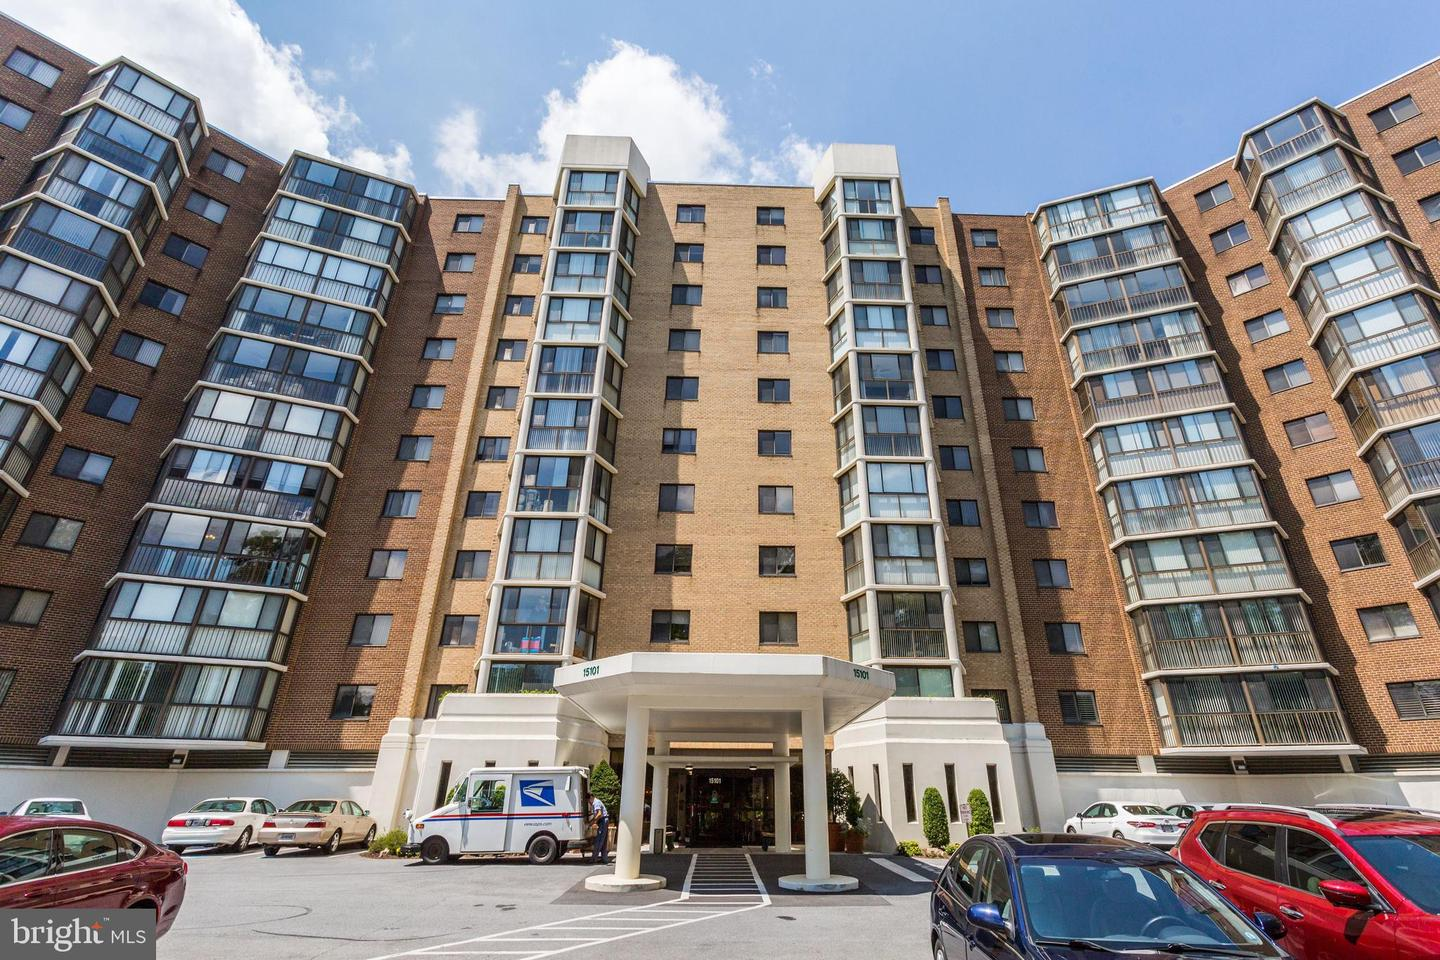 15101  Interlachen,  Silver Spring, MD